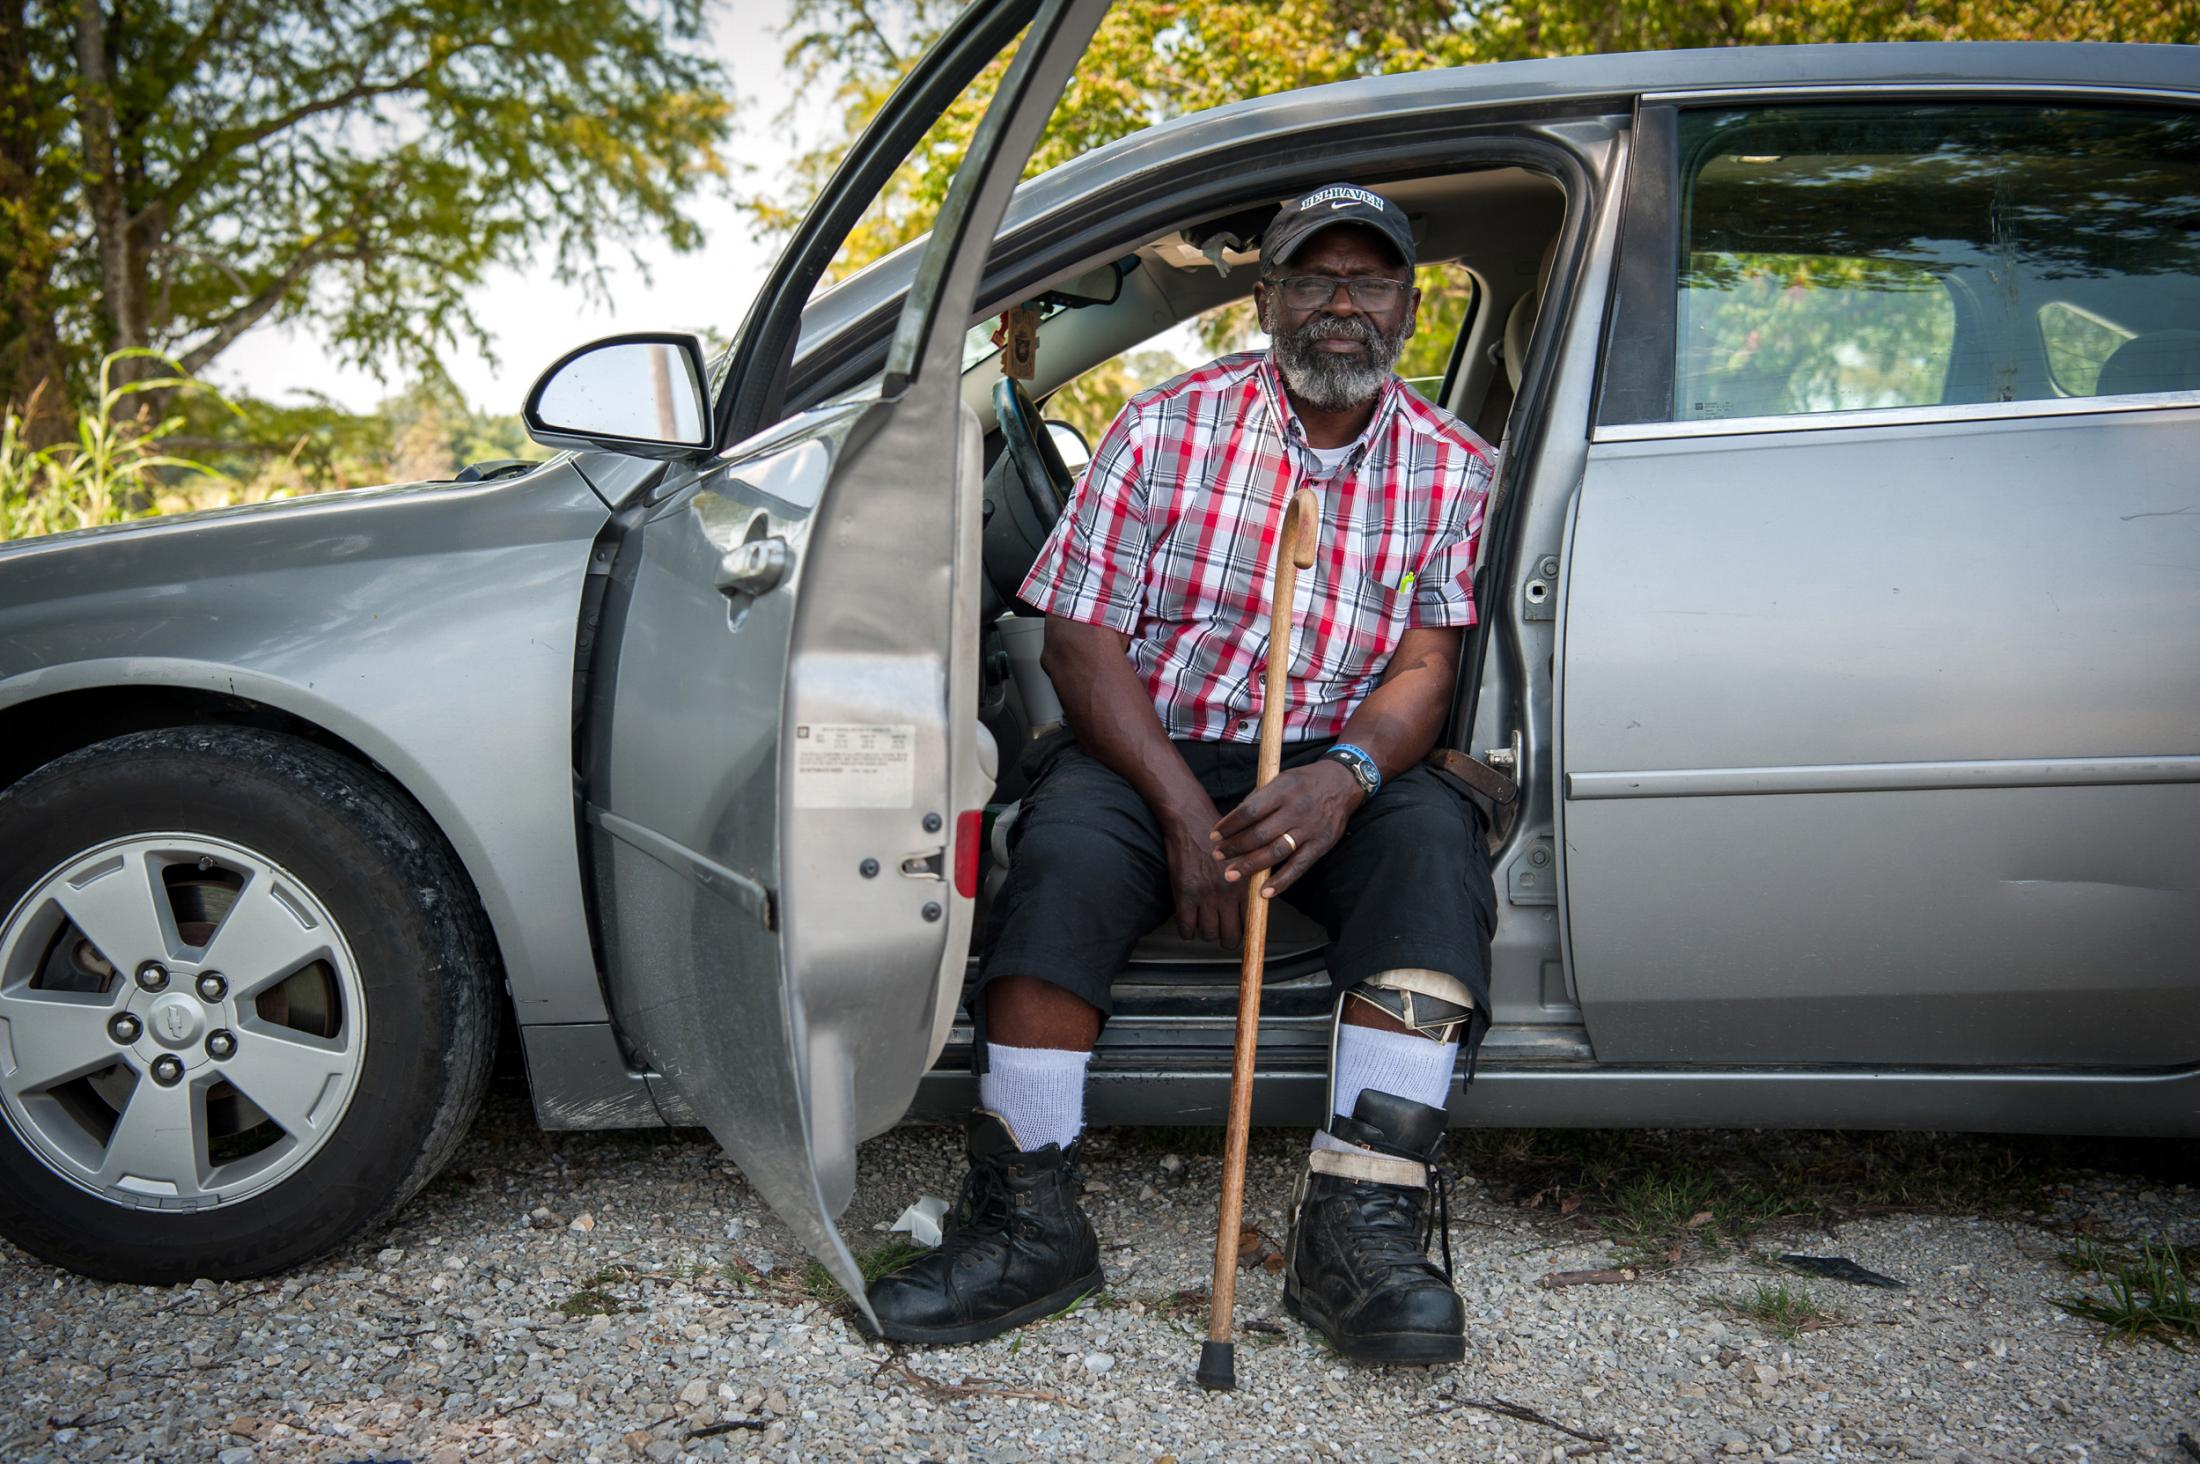 "Anderson Jones poses for a portait in Onward, Mississippi on July 27, 2019. Jones, a lifelong resident of Fitler, Mississippi, said he would do whatever it takes to repair his home from flood damage. ""I've lived in that house my whole life. Where am I going to go if I can't move back?"" Photo by Rory Doyle for The Guardian."